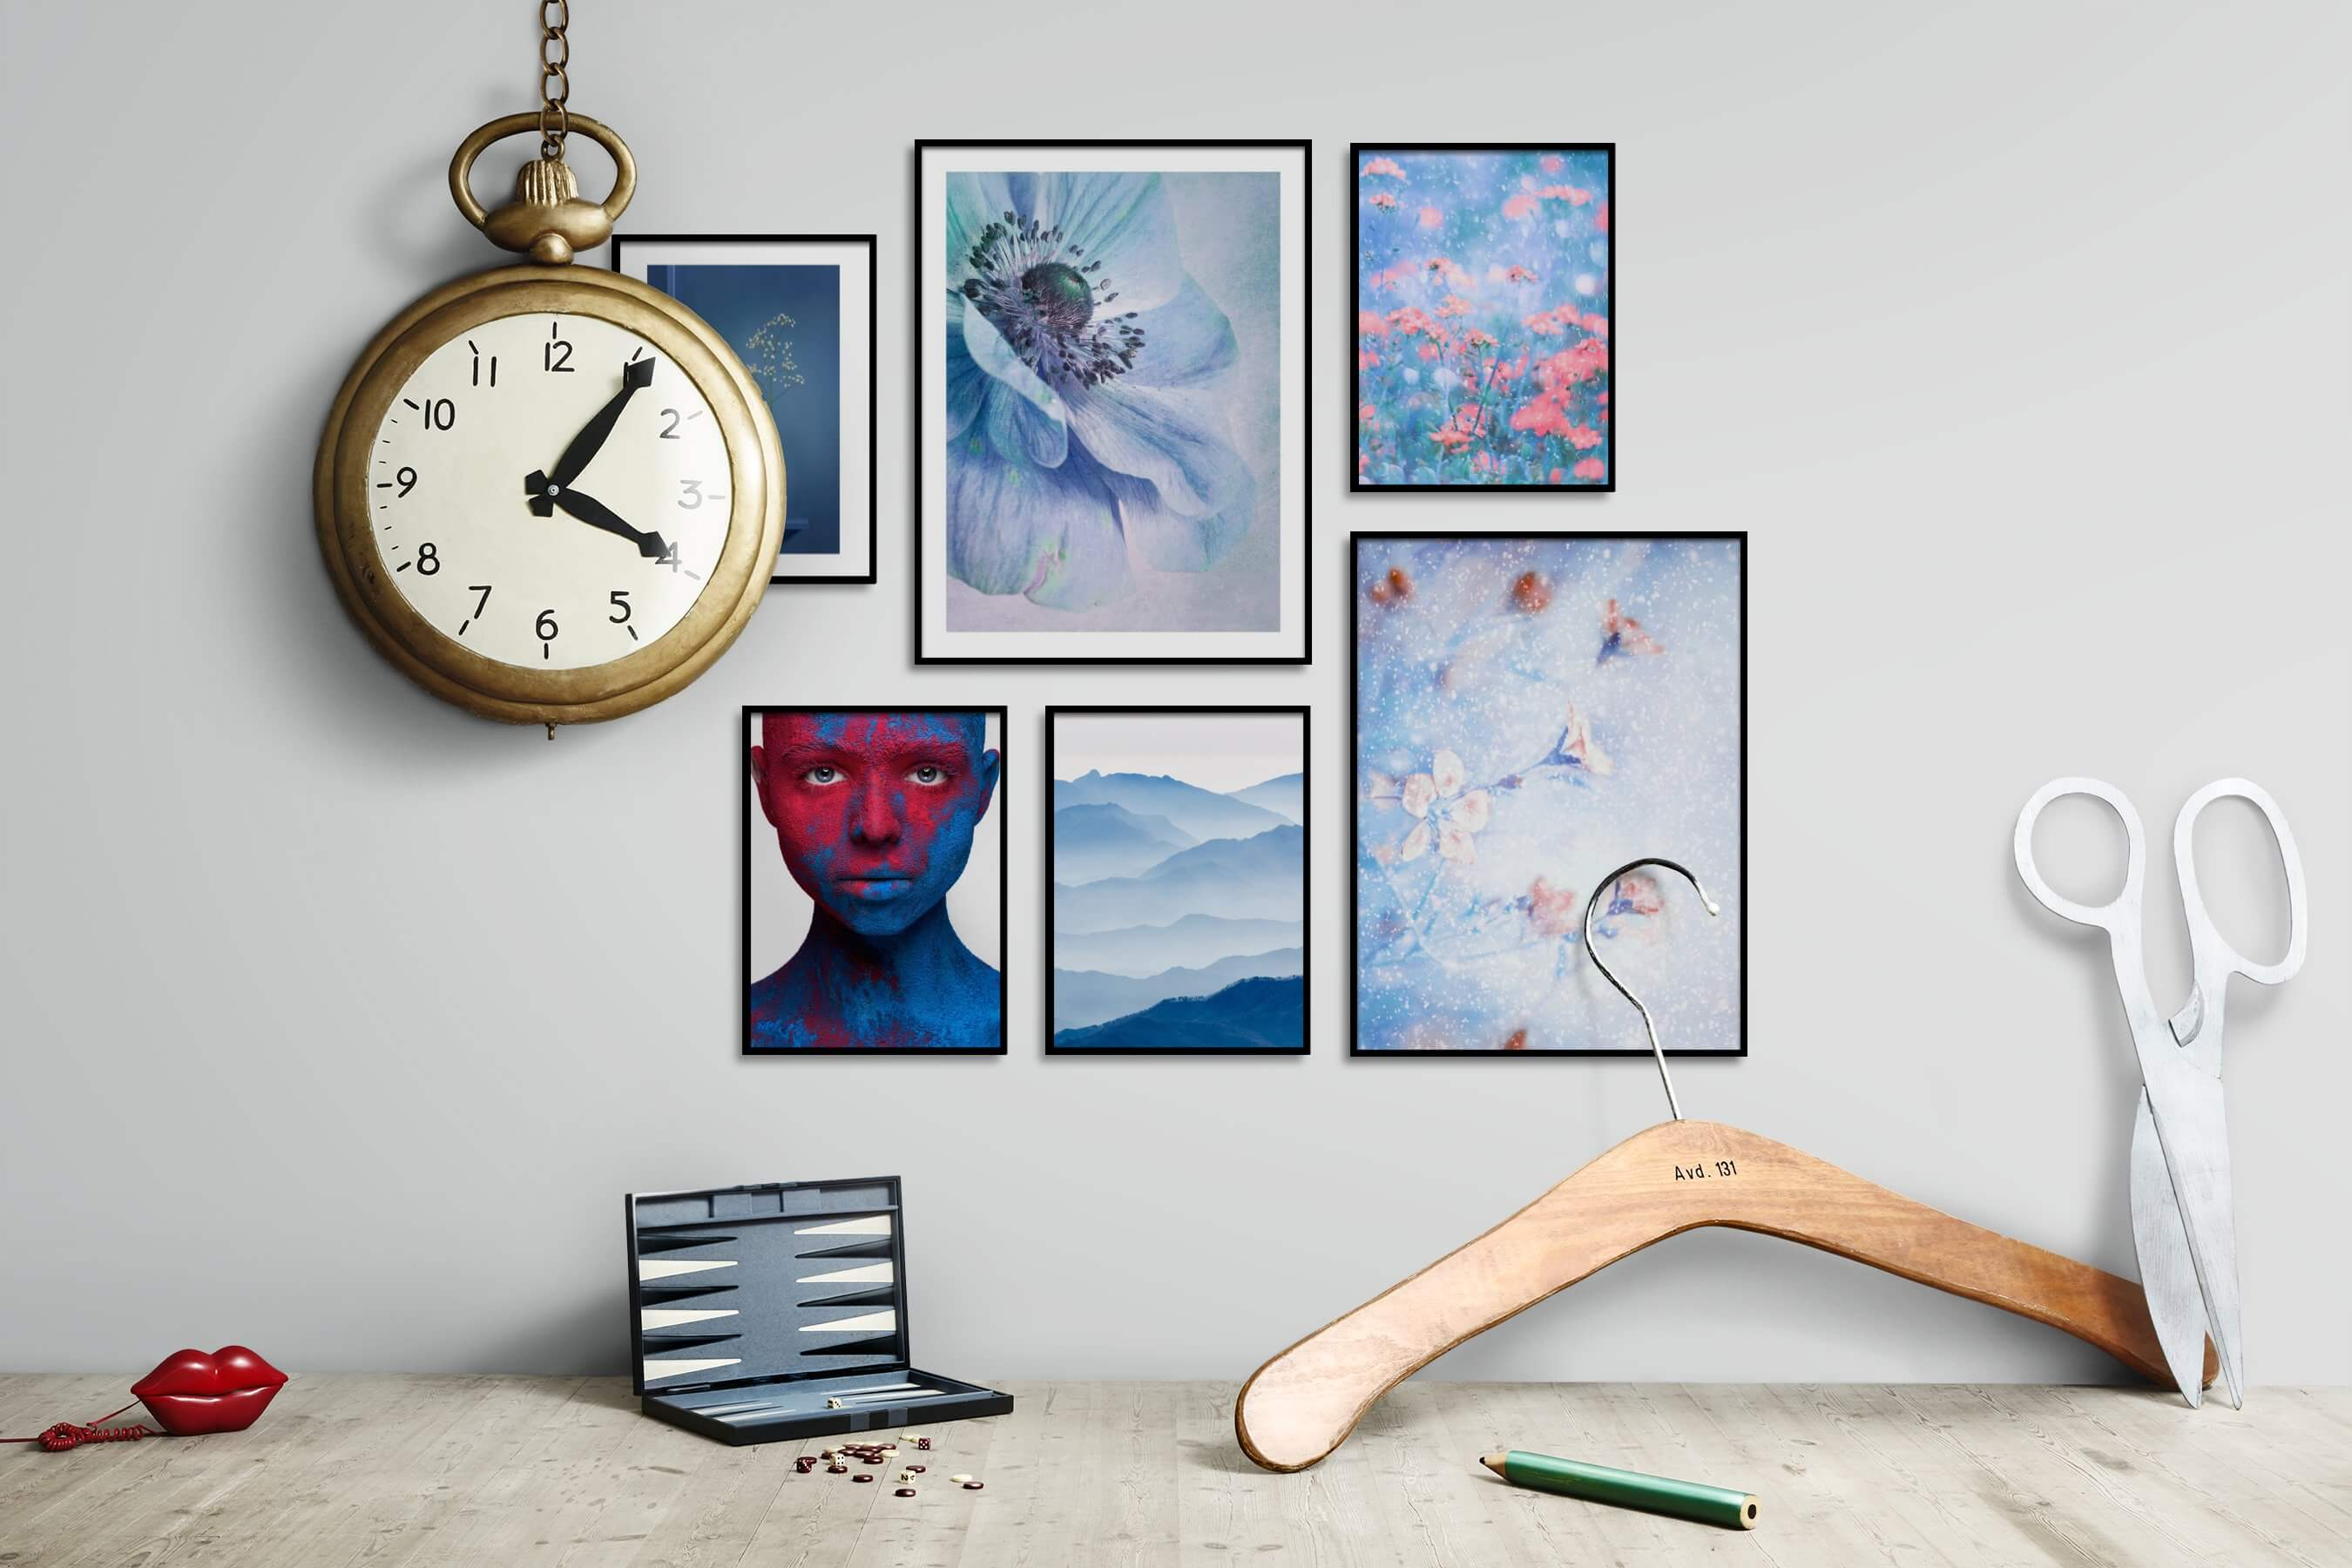 Gallery wall idea with six framed pictures arranged on a wall depicting For the Moderate, Flowers & Plants, Artsy, Colorful, Nature, and Mindfulness